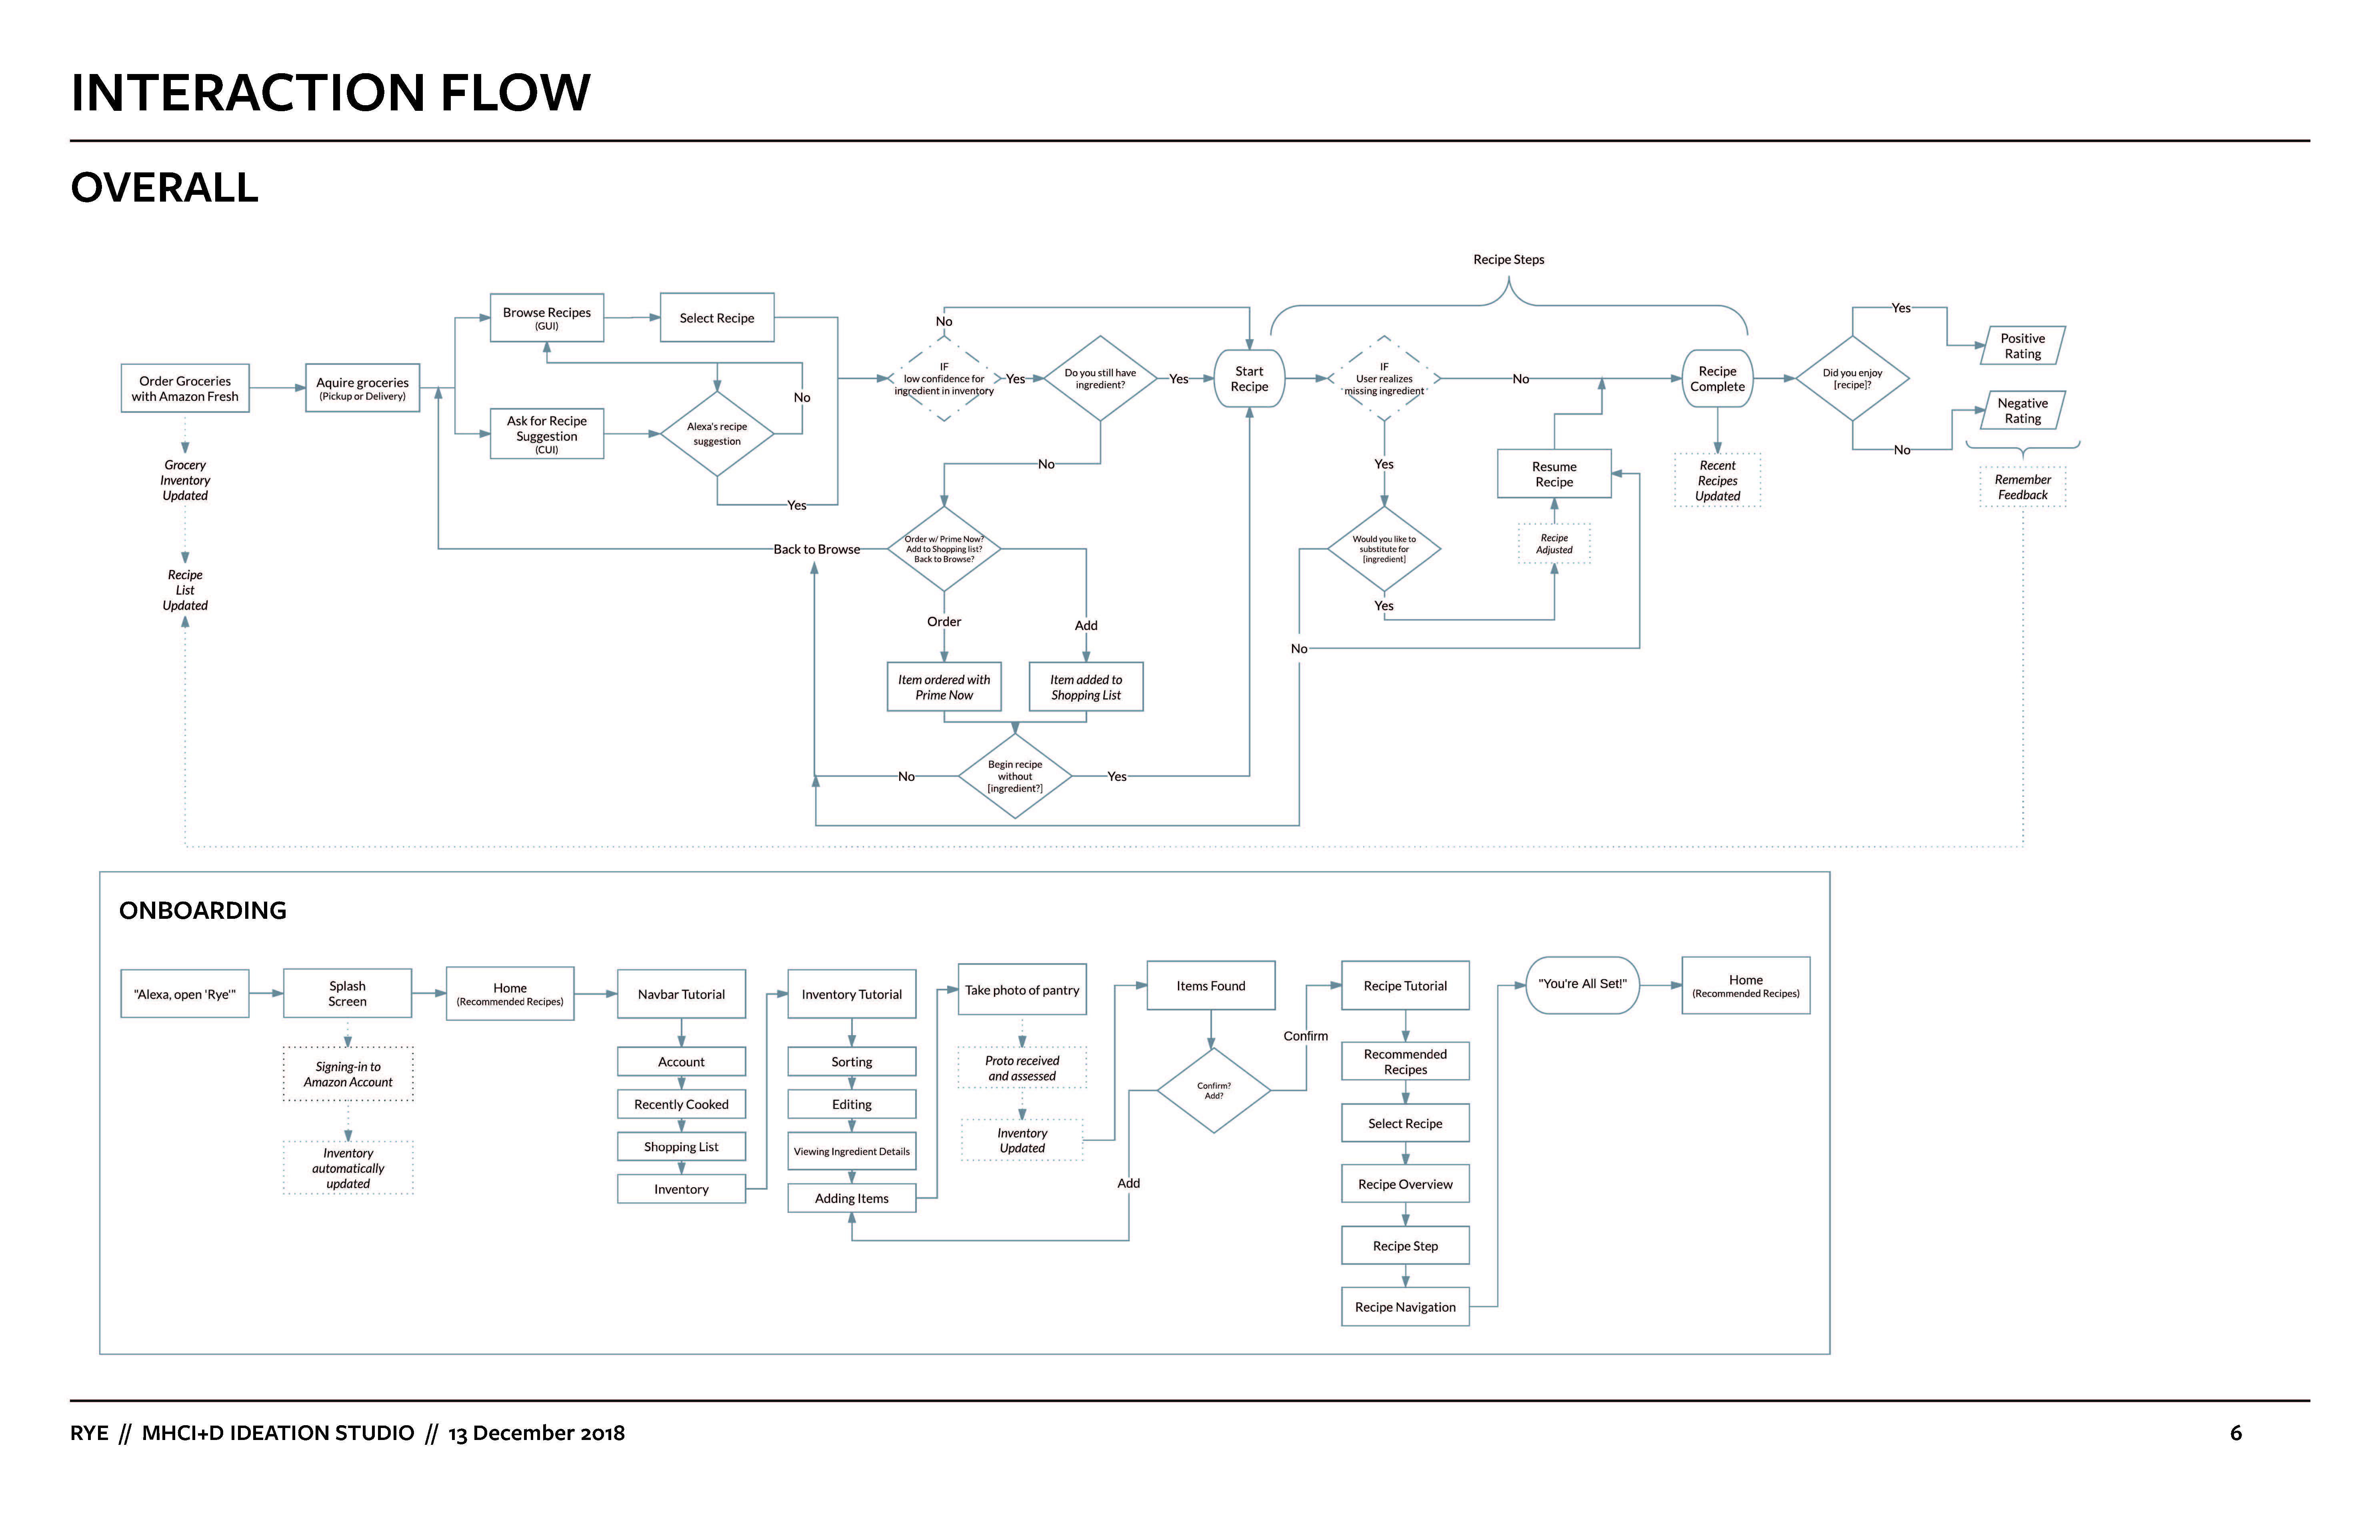 overall interaction flow